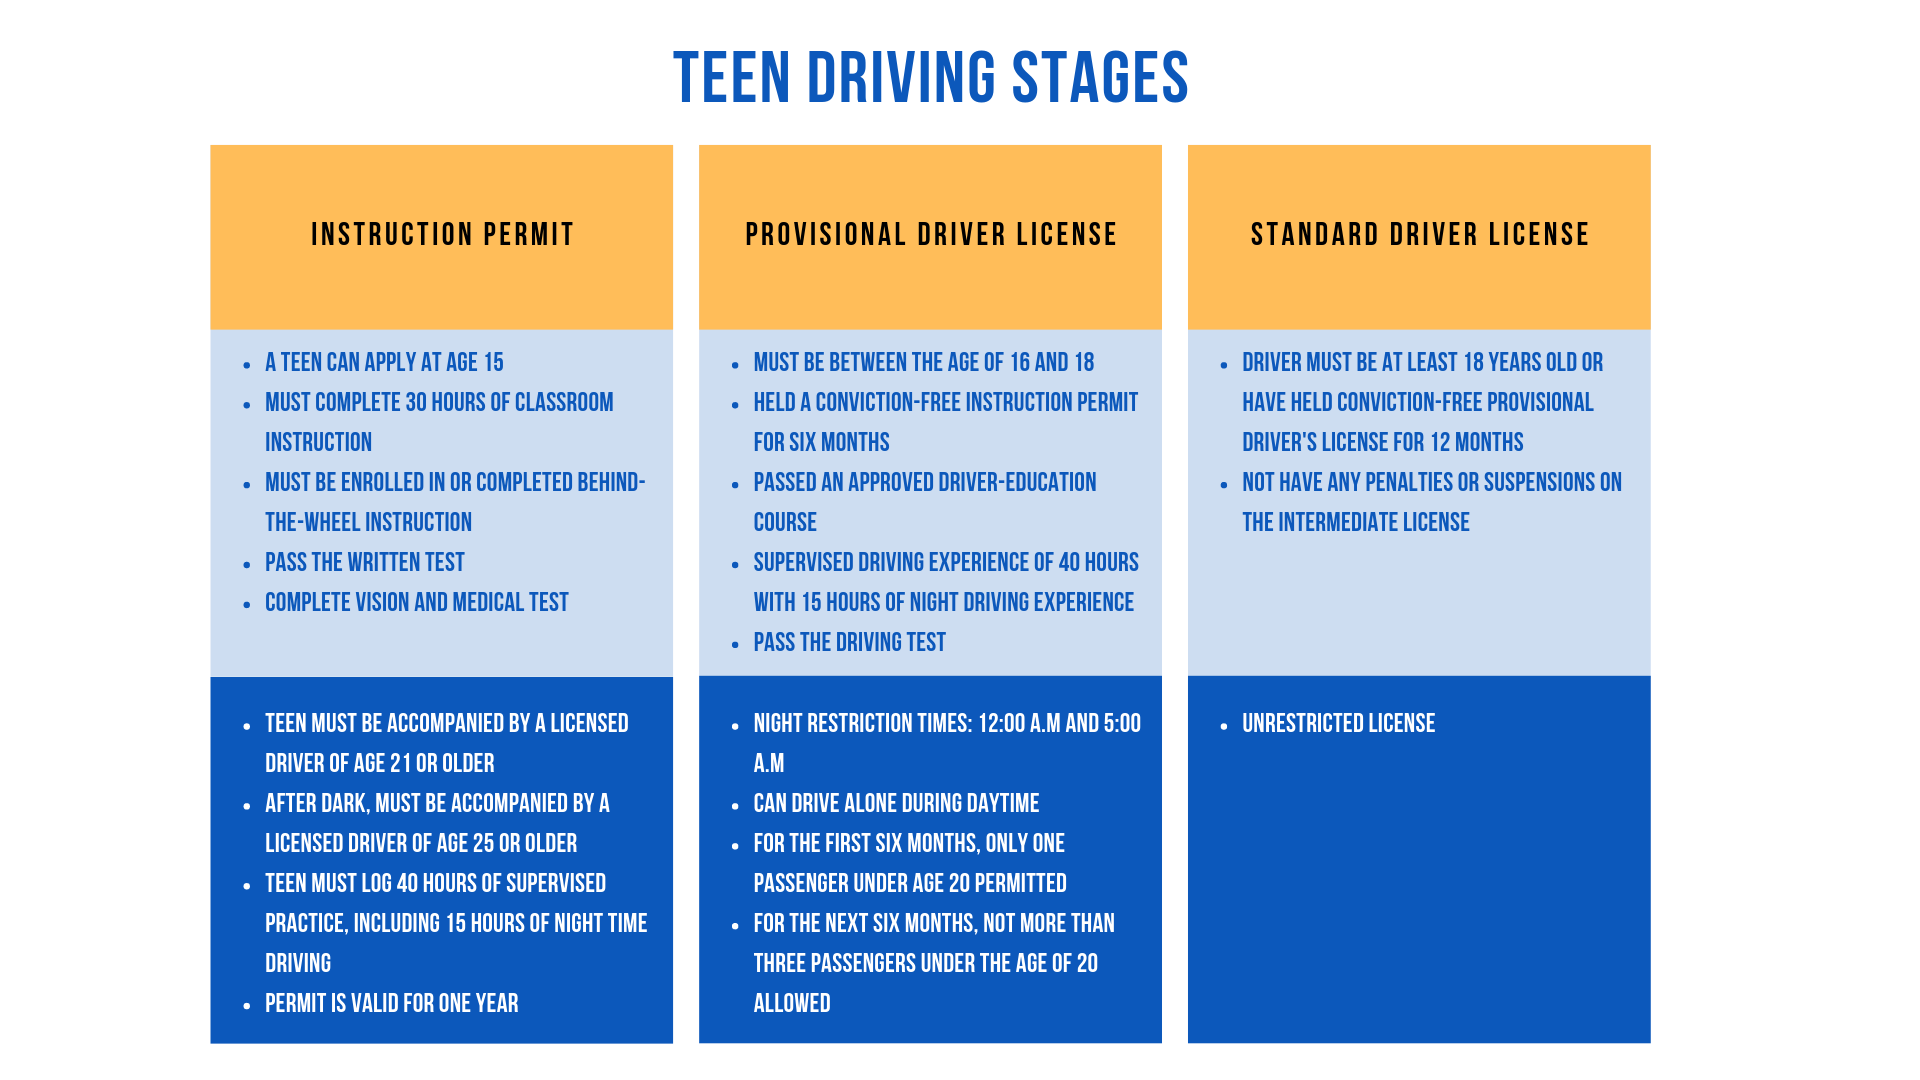 Teen Driving Stages in Minnesota